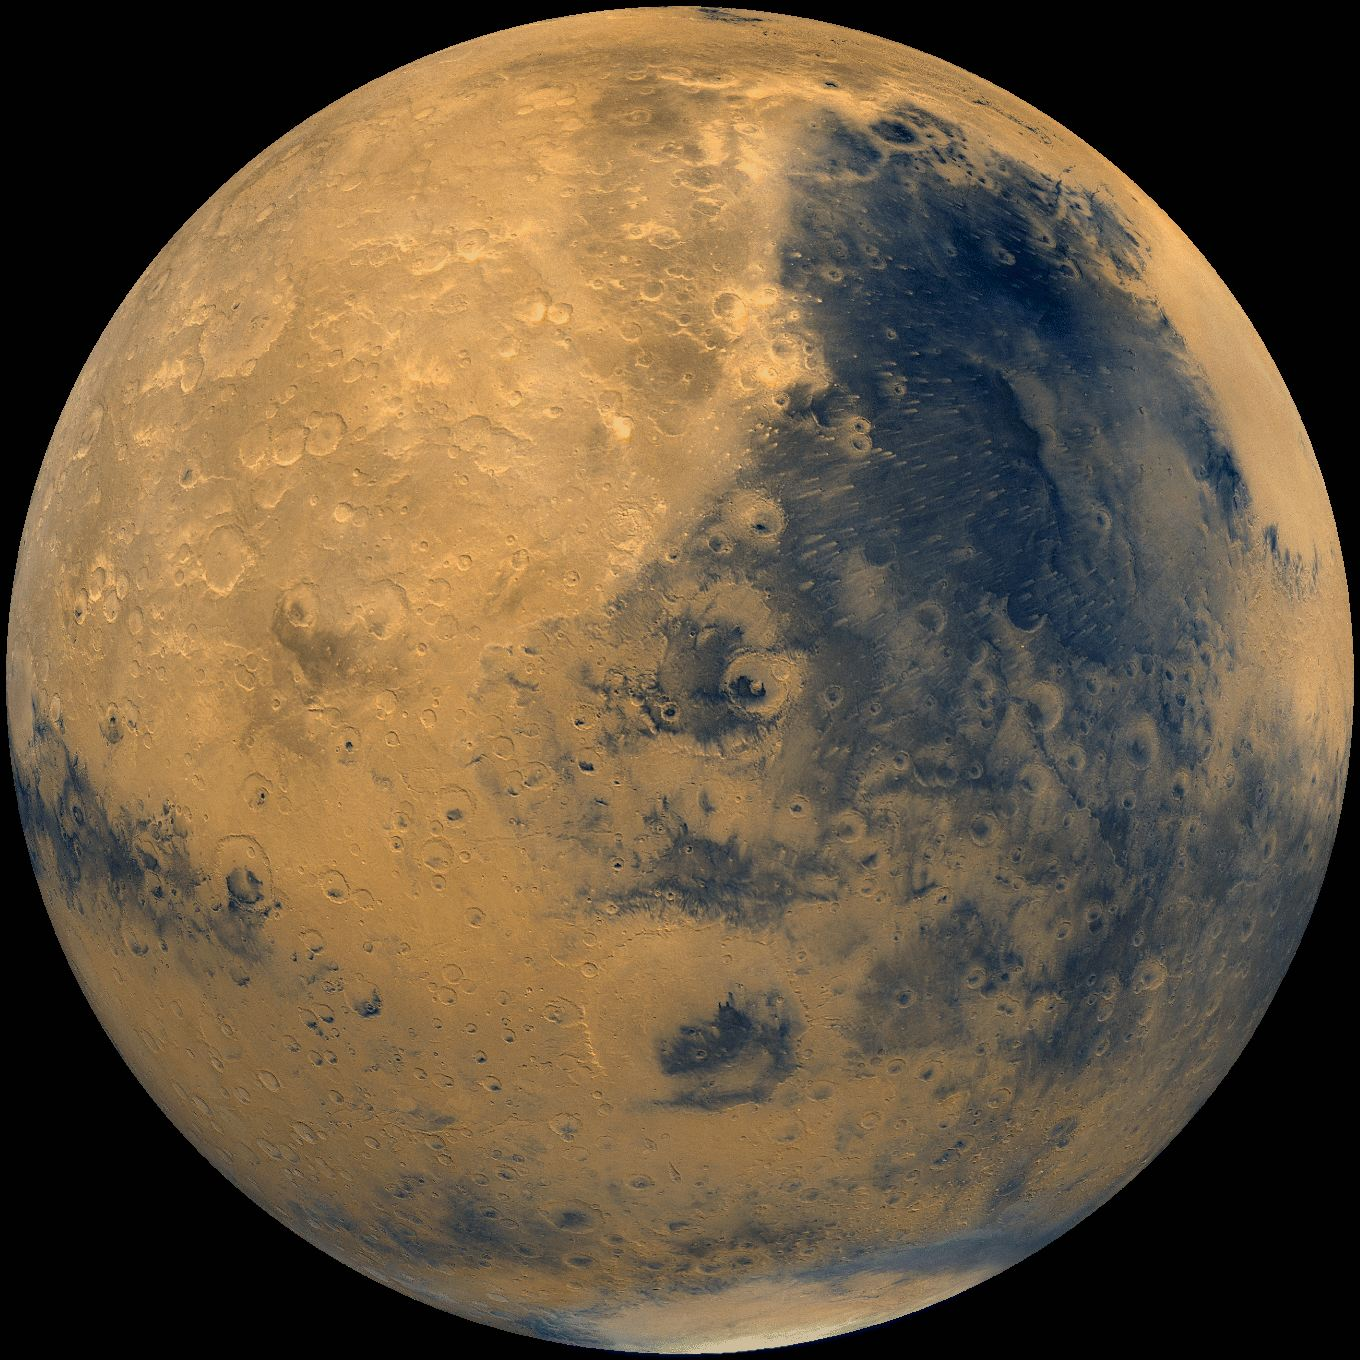 Viking's View of Mars